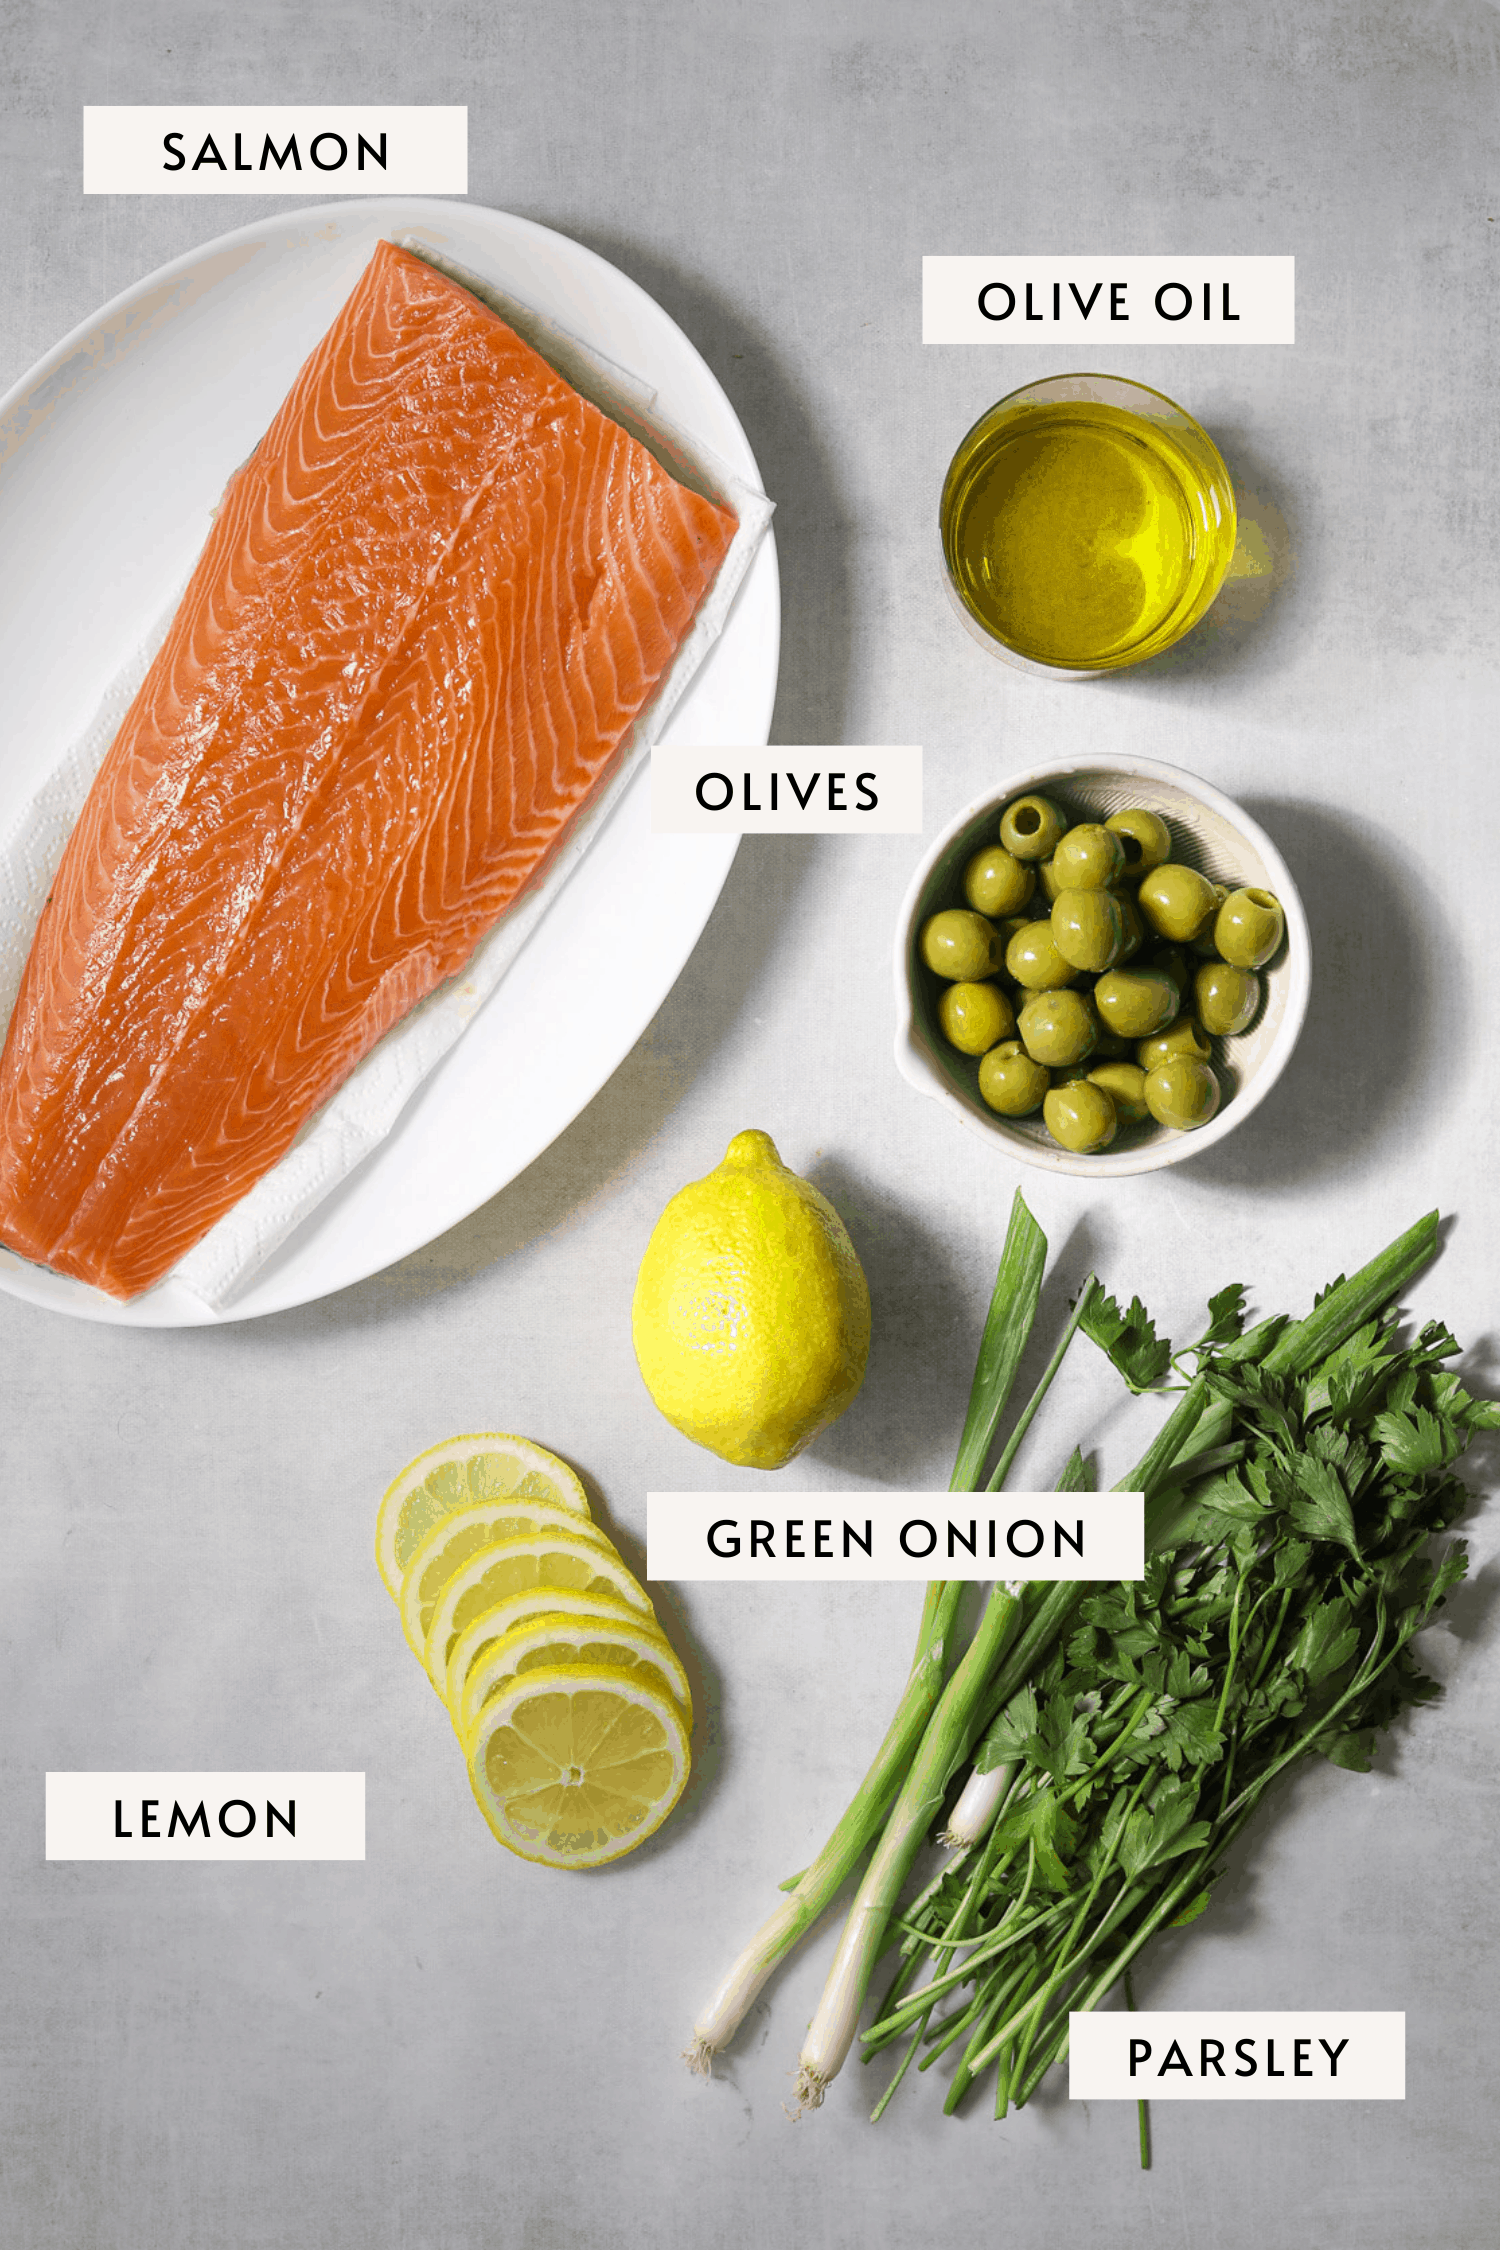 recipe ingredients: filet of salmon, fresh parsley, castelveltrano olives, lemon, green onion and olive oil